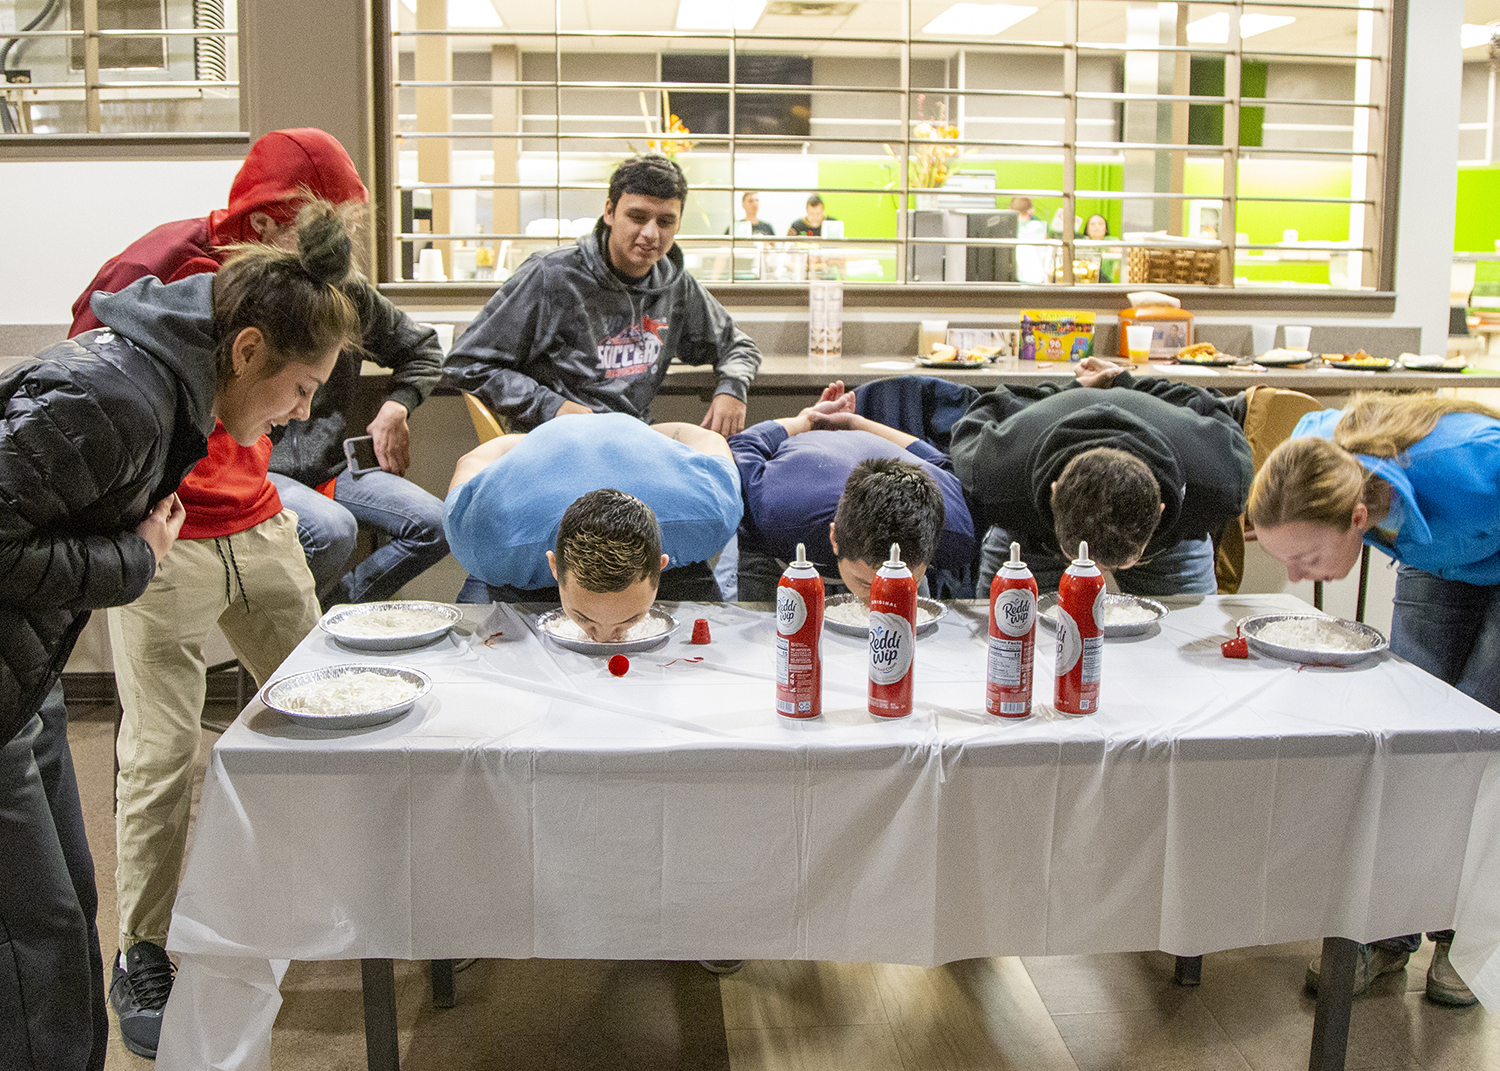 Students competing in a pie eating contest